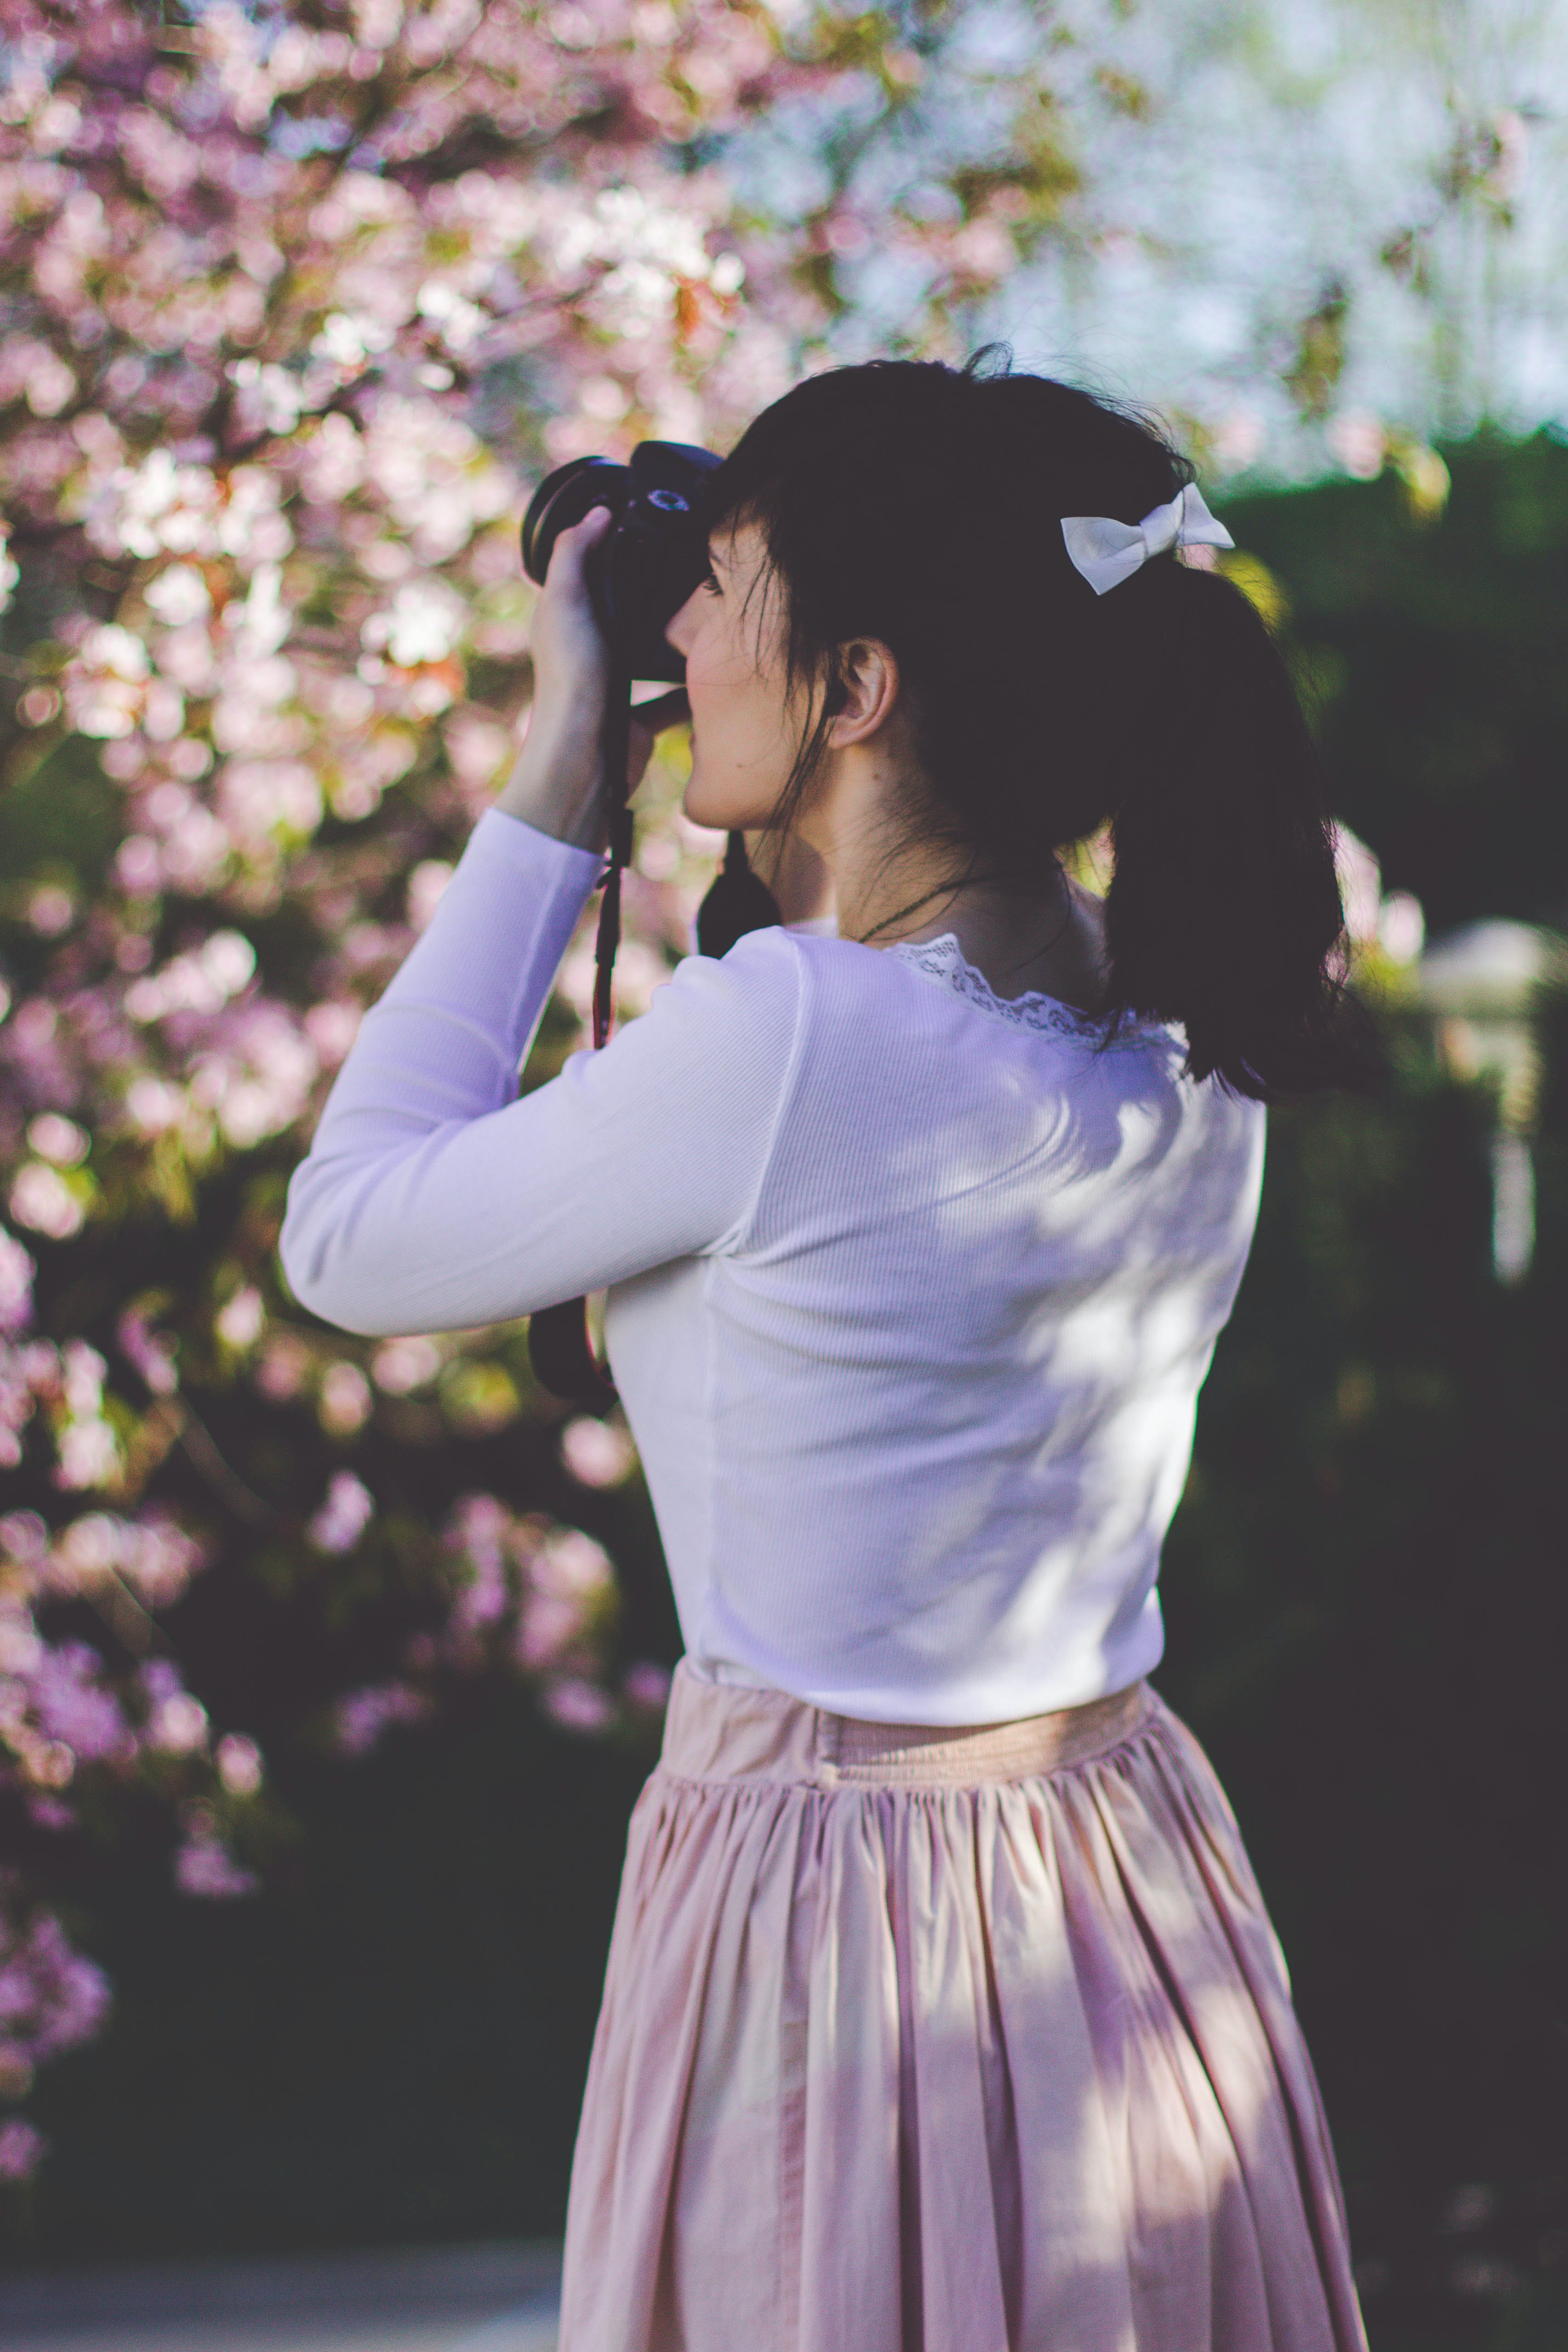 Woman in Pink Skirt Holding Camera Try to Picture the Tree